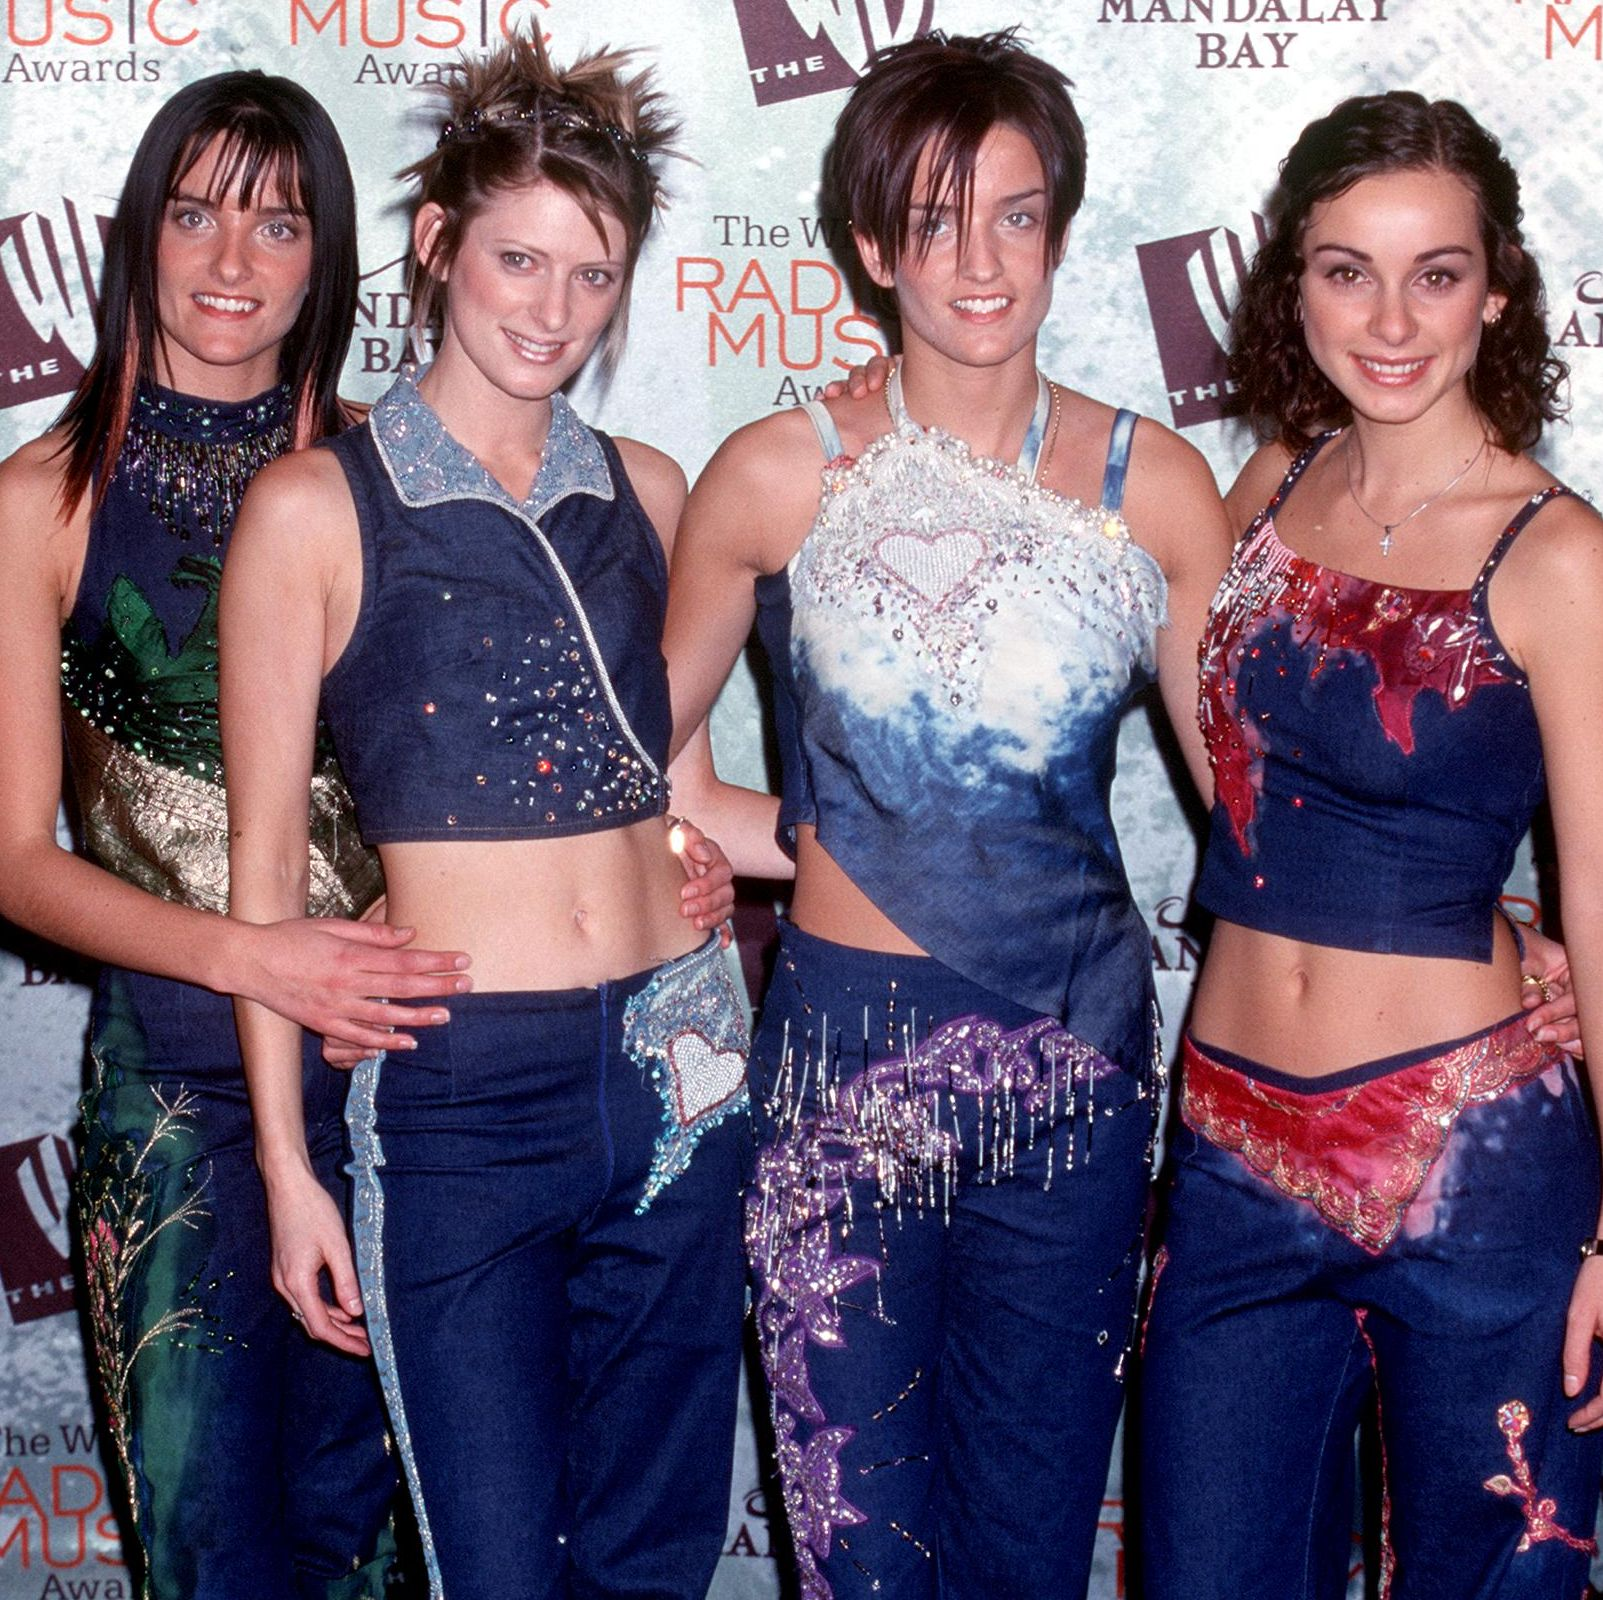 Exclusive: B*Witched star Keavy Lynch contemplated suicide after the band broke up